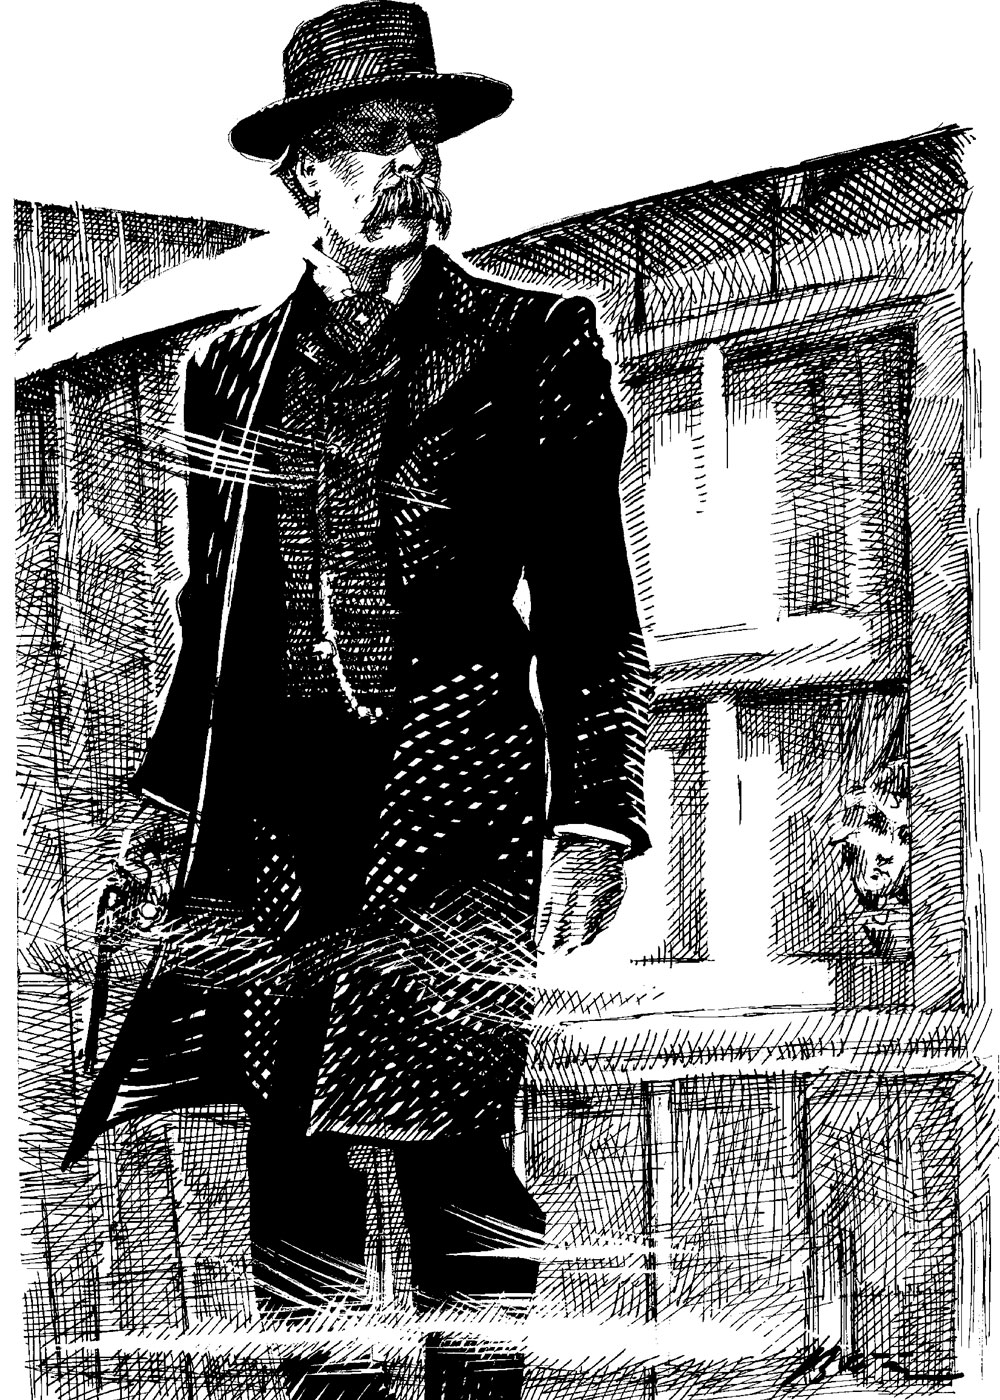 wyatt earp illustration true west magazine